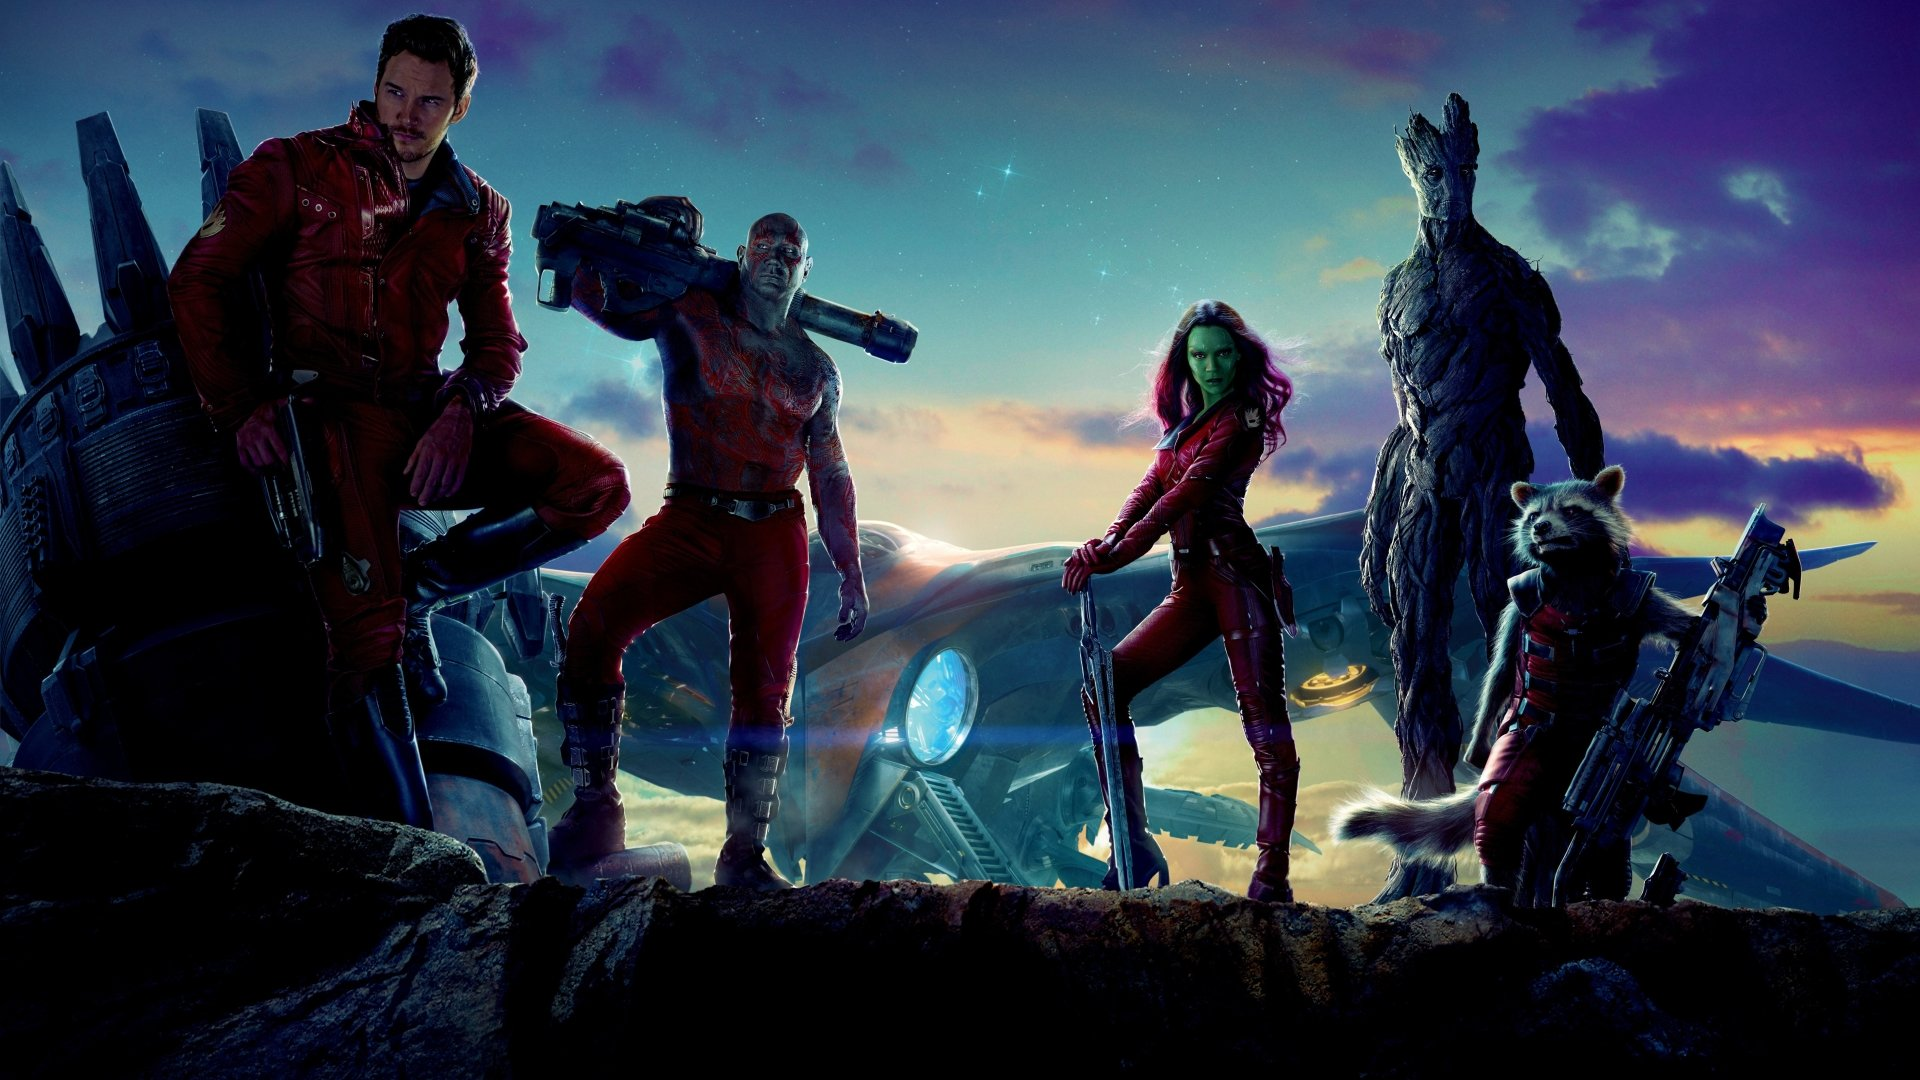 Movie - Guardians of the Galaxy  Dave Bautista Zoe Saldana Chris Pratt Peter Quill Groot Drax The Destroyer Star Lord Gamora Rocket Raccoon Wallpaper